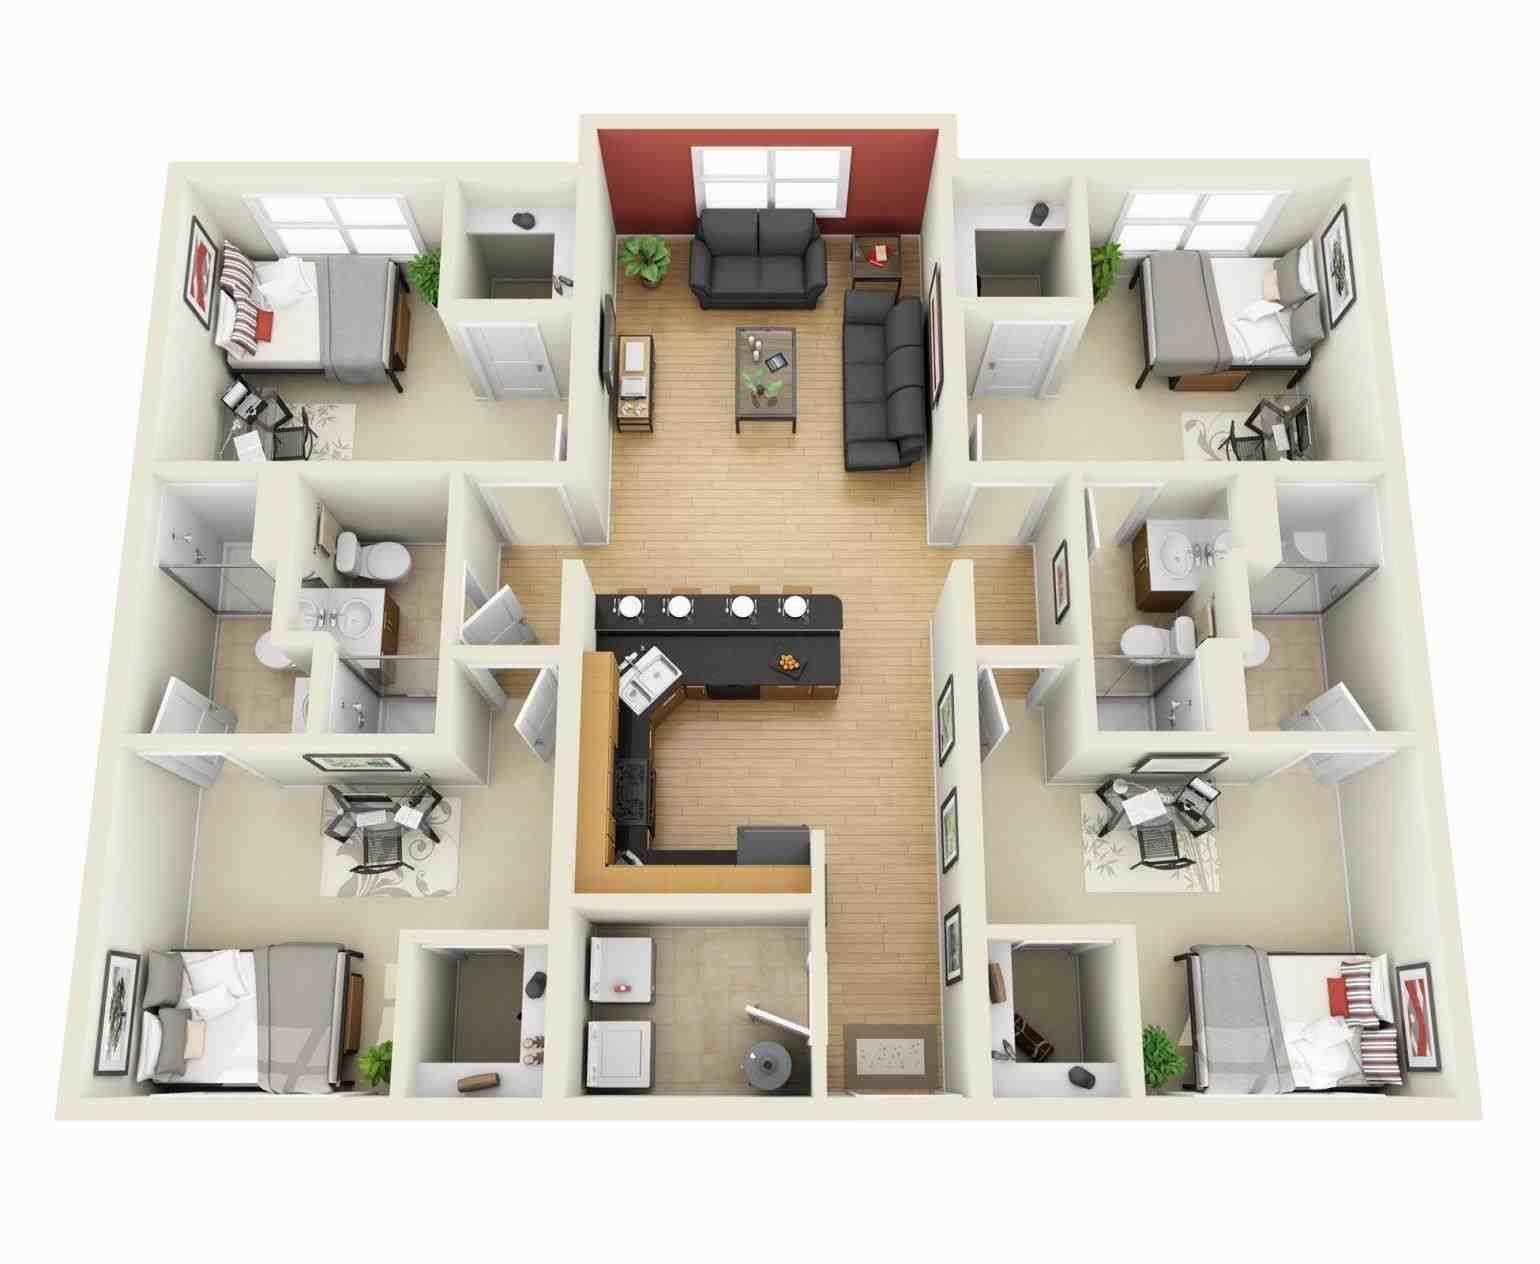 1 Bedroom Apartment Floor Plans 3d One Bedroom House Plans In 3d New Modern Apartments And Houses 3d Floor 4 Bedroom House Plans 3d House Plans House Plans